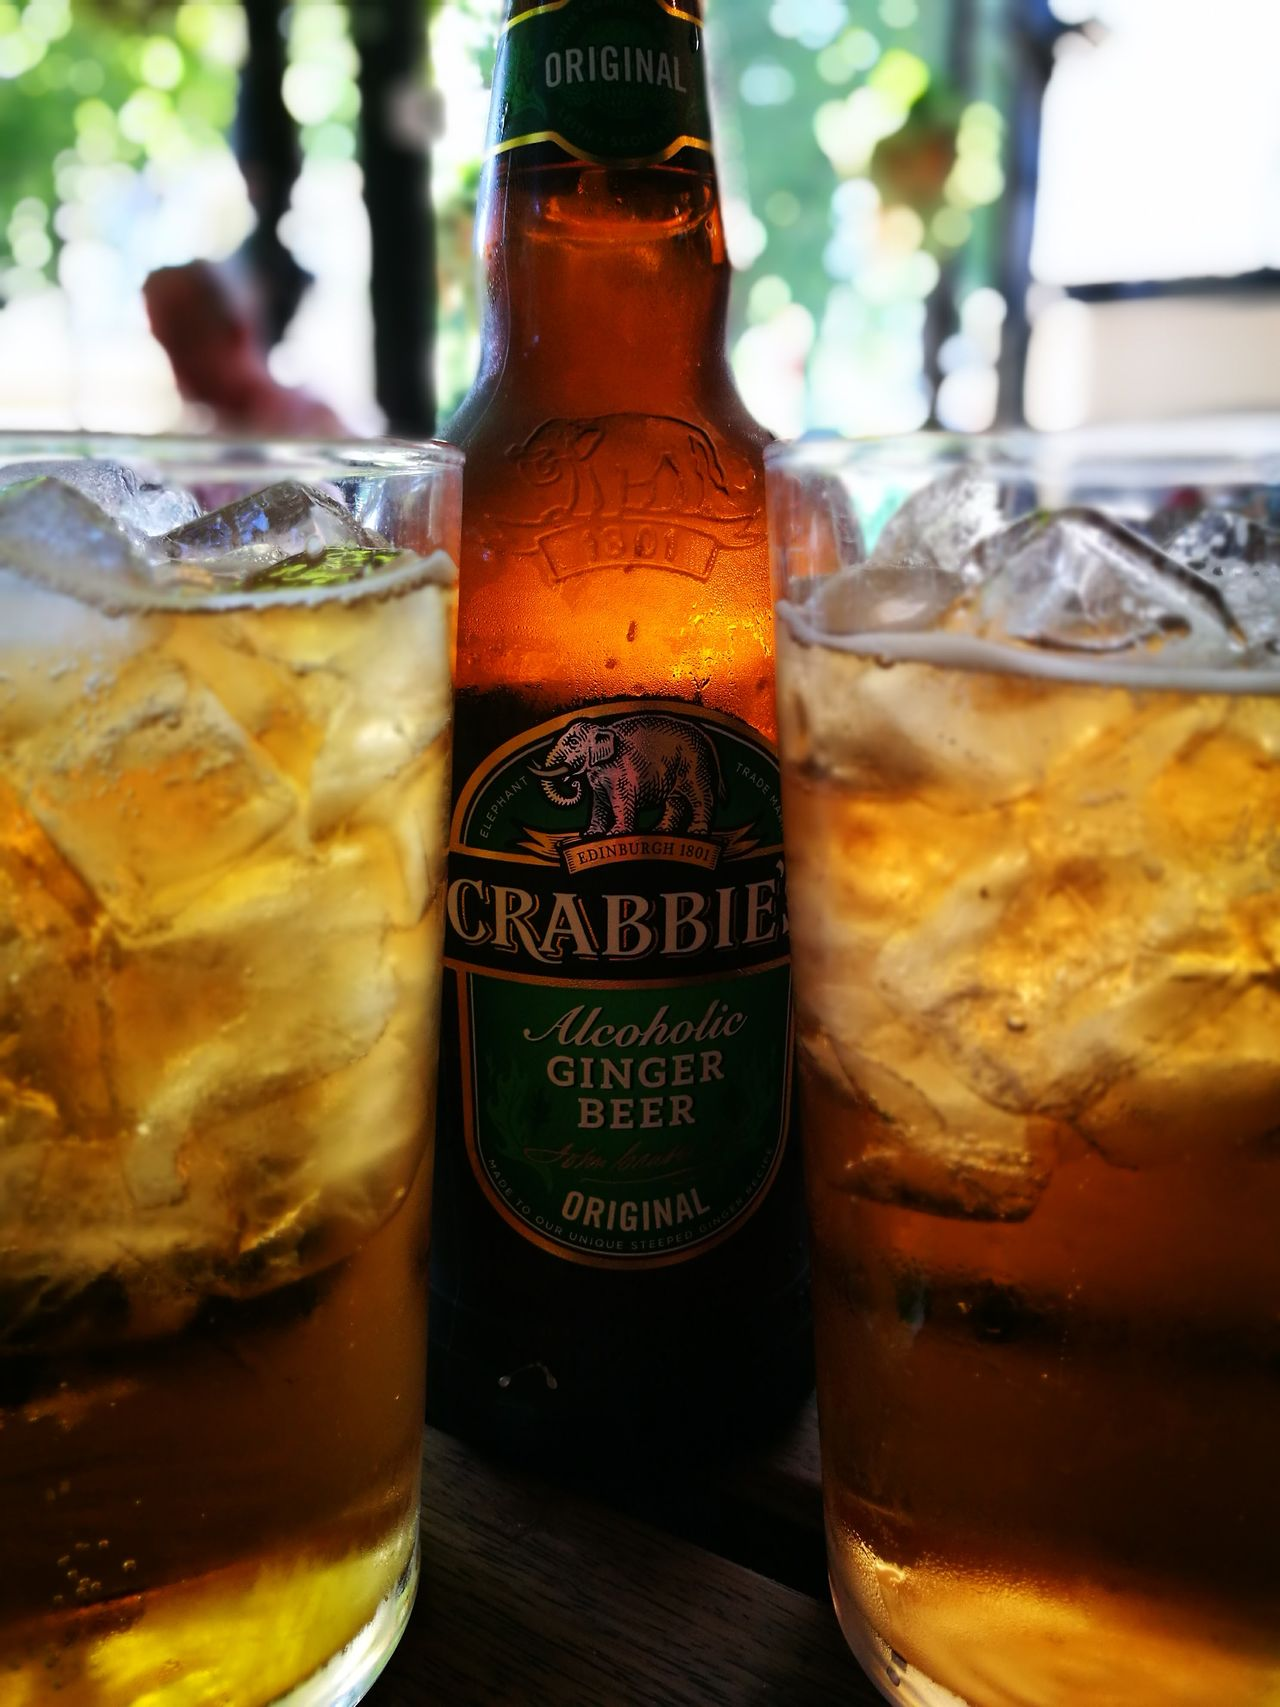 Drink Bottle Drinking Glass Food And Drink Refreshment Glass - Material Alcohol Non-alcoholic Beverage Cold Drink Ice Tea Ice Cube No People Beer - Alcohol Close-up Jar Cola Condensation Cold Temperature Liquid Freshness Crabbies Gingerbeer